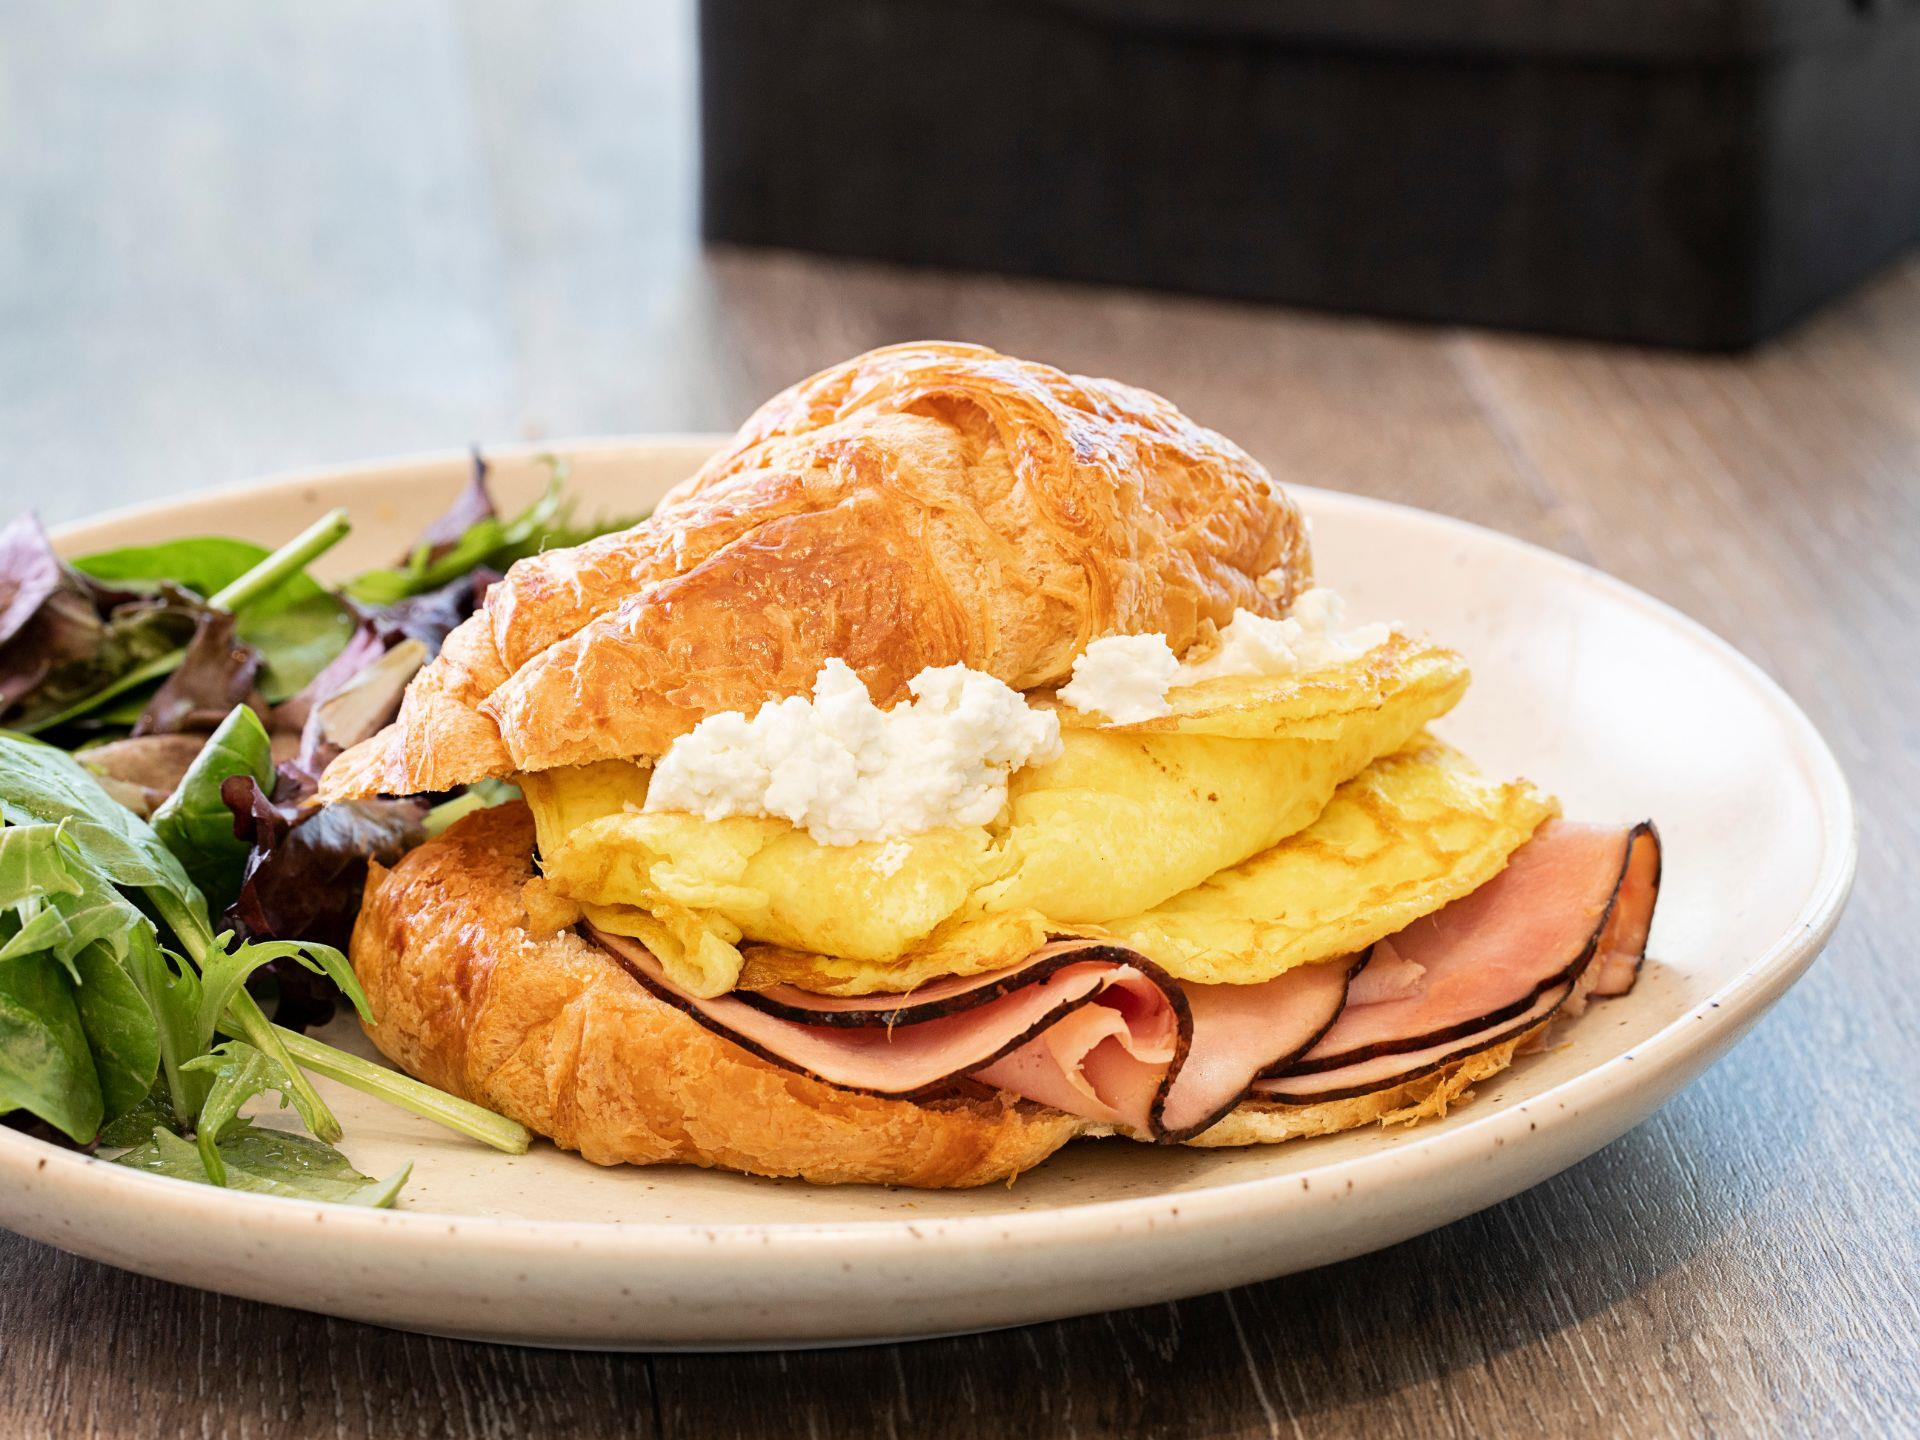 Ham, egg and cheese on a croissant with mixed greens